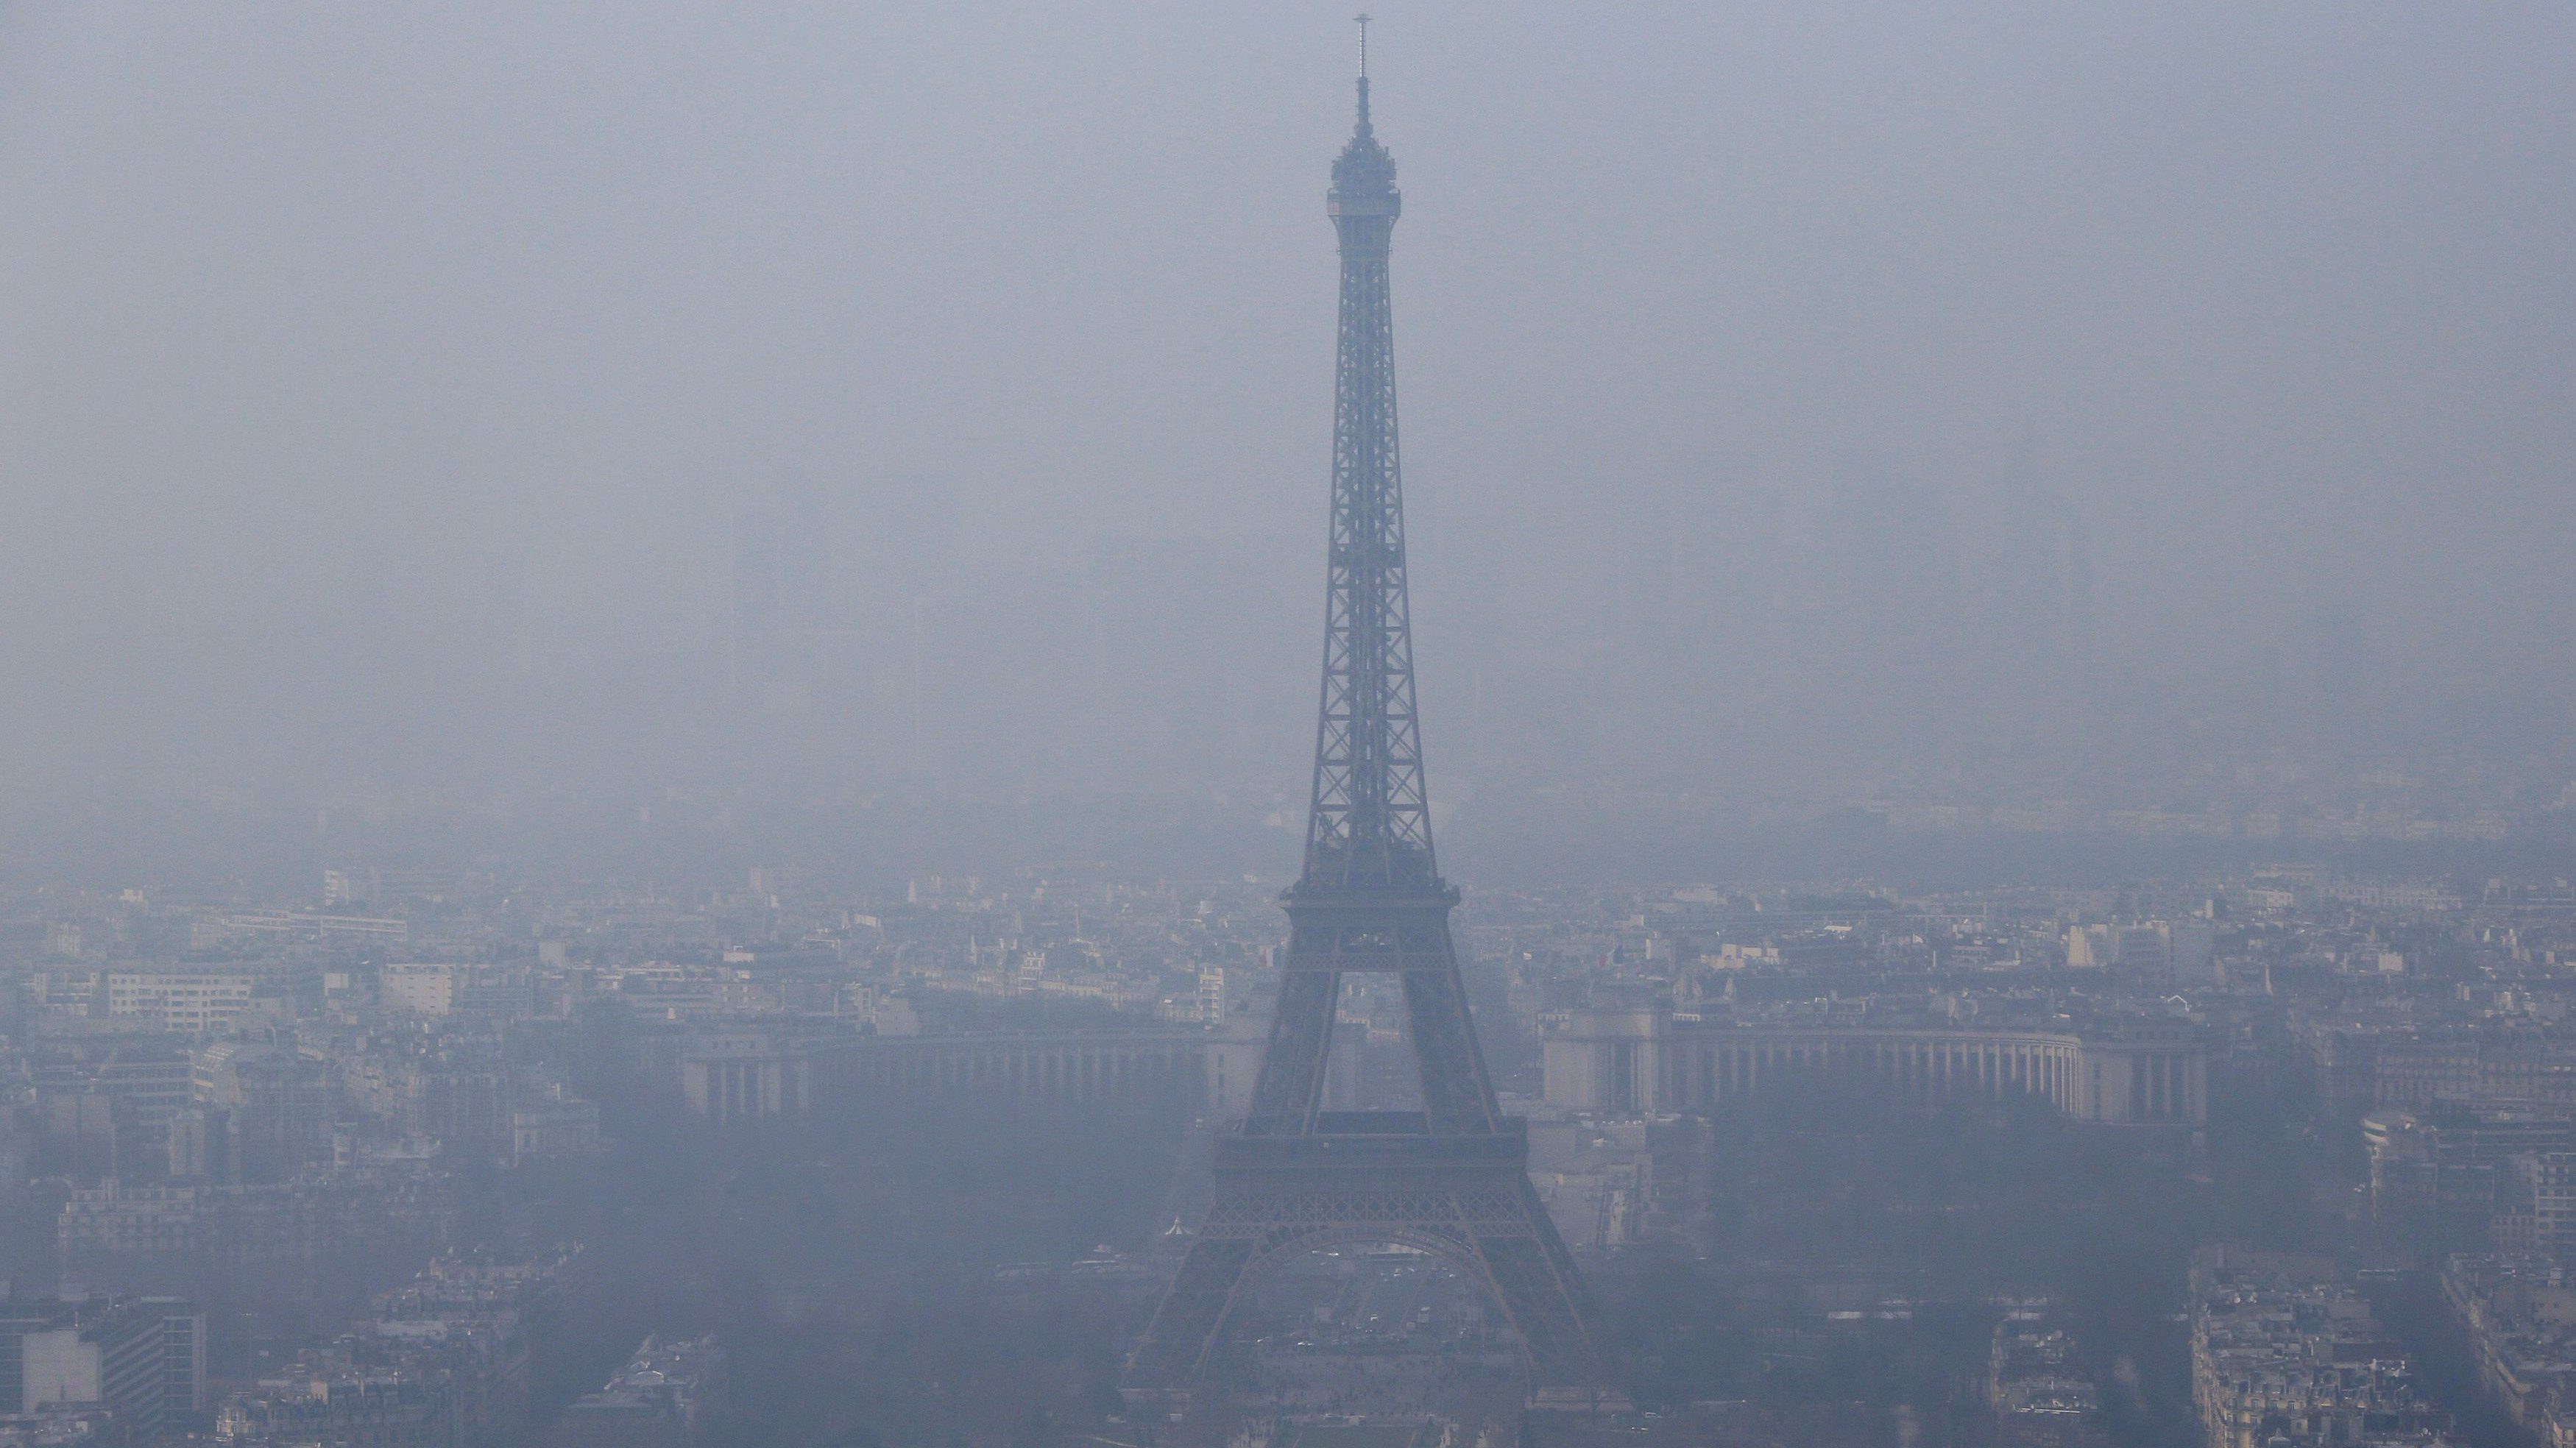 Paris is banning diesel cars to stop pollution like this around the Eiffel Tower